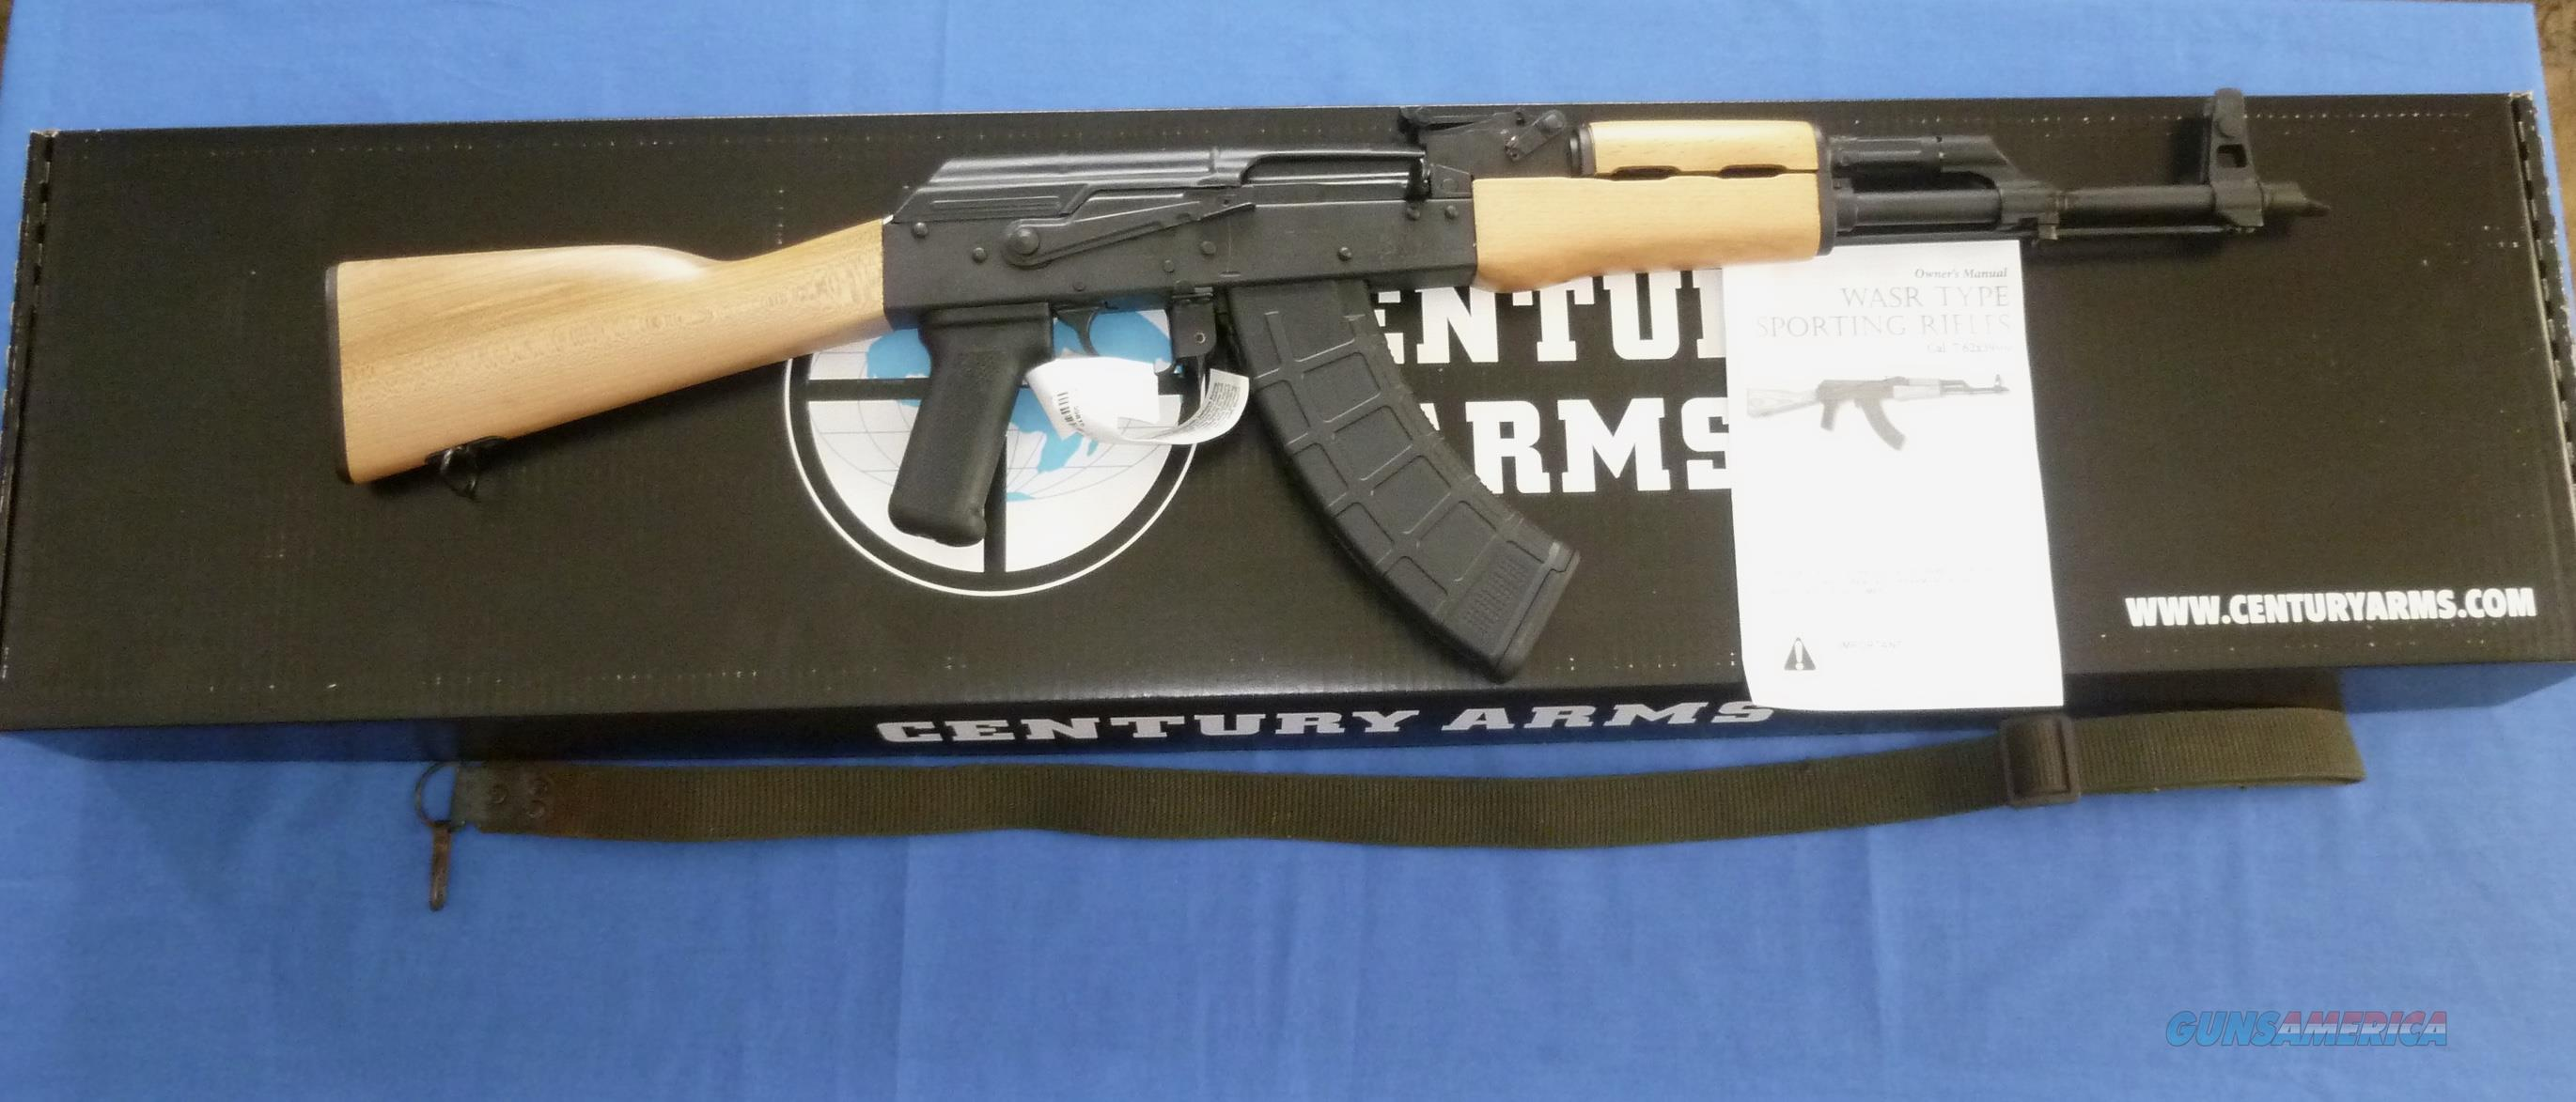 Ak 47 Rifles And Copies Local Deals National For Sale User